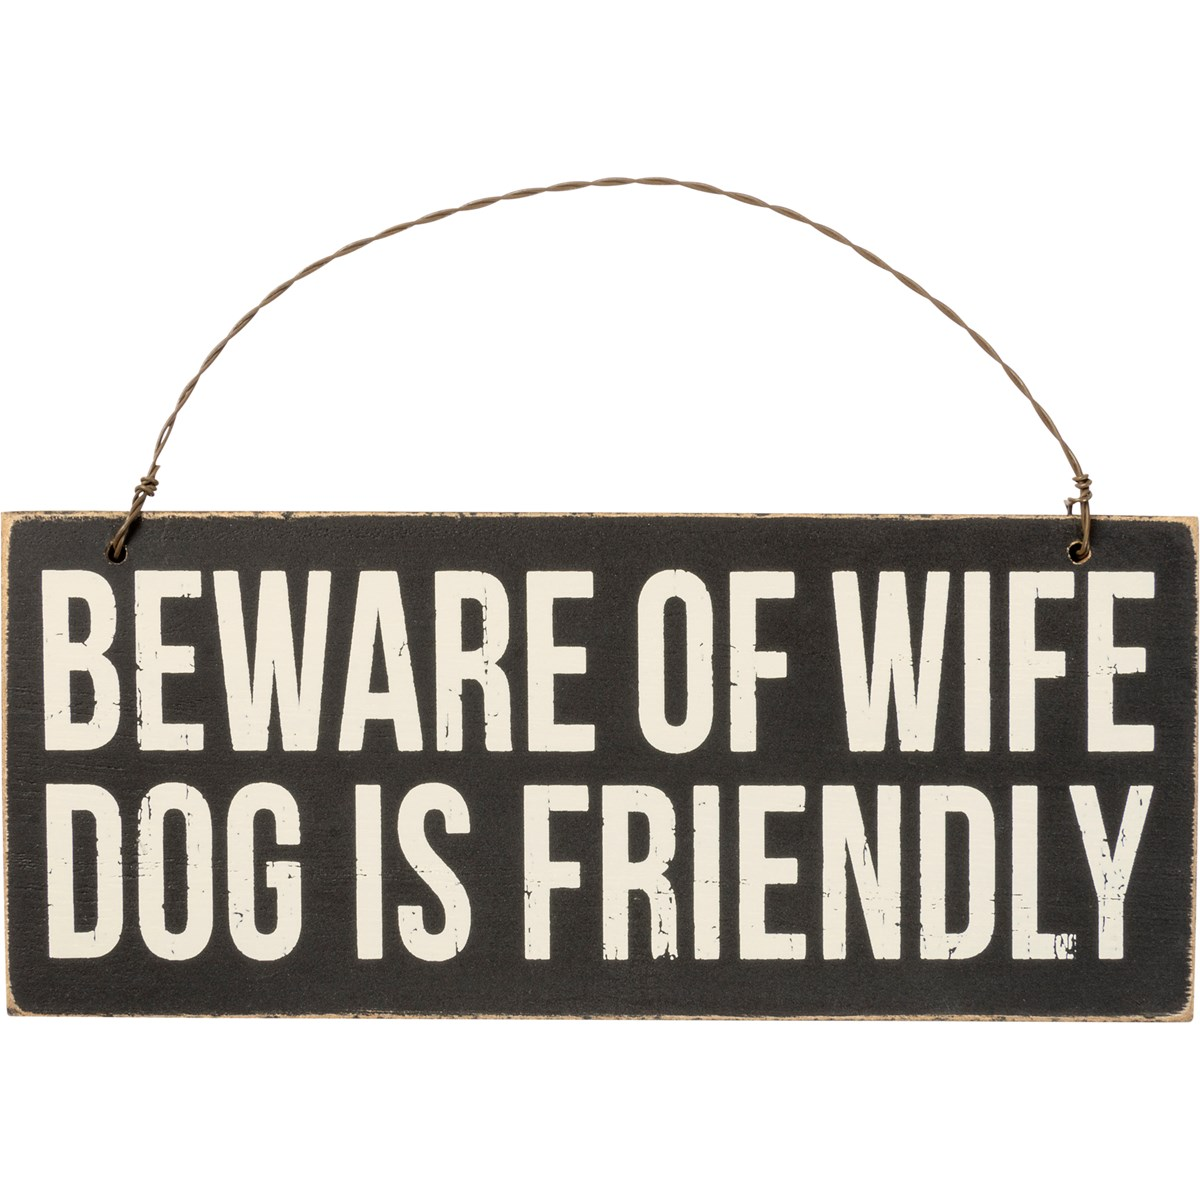 "Ornament - Beware Of Wife Dog Is Friendly - 7"" x 3"" x 0.25"" - Wood, Wire"